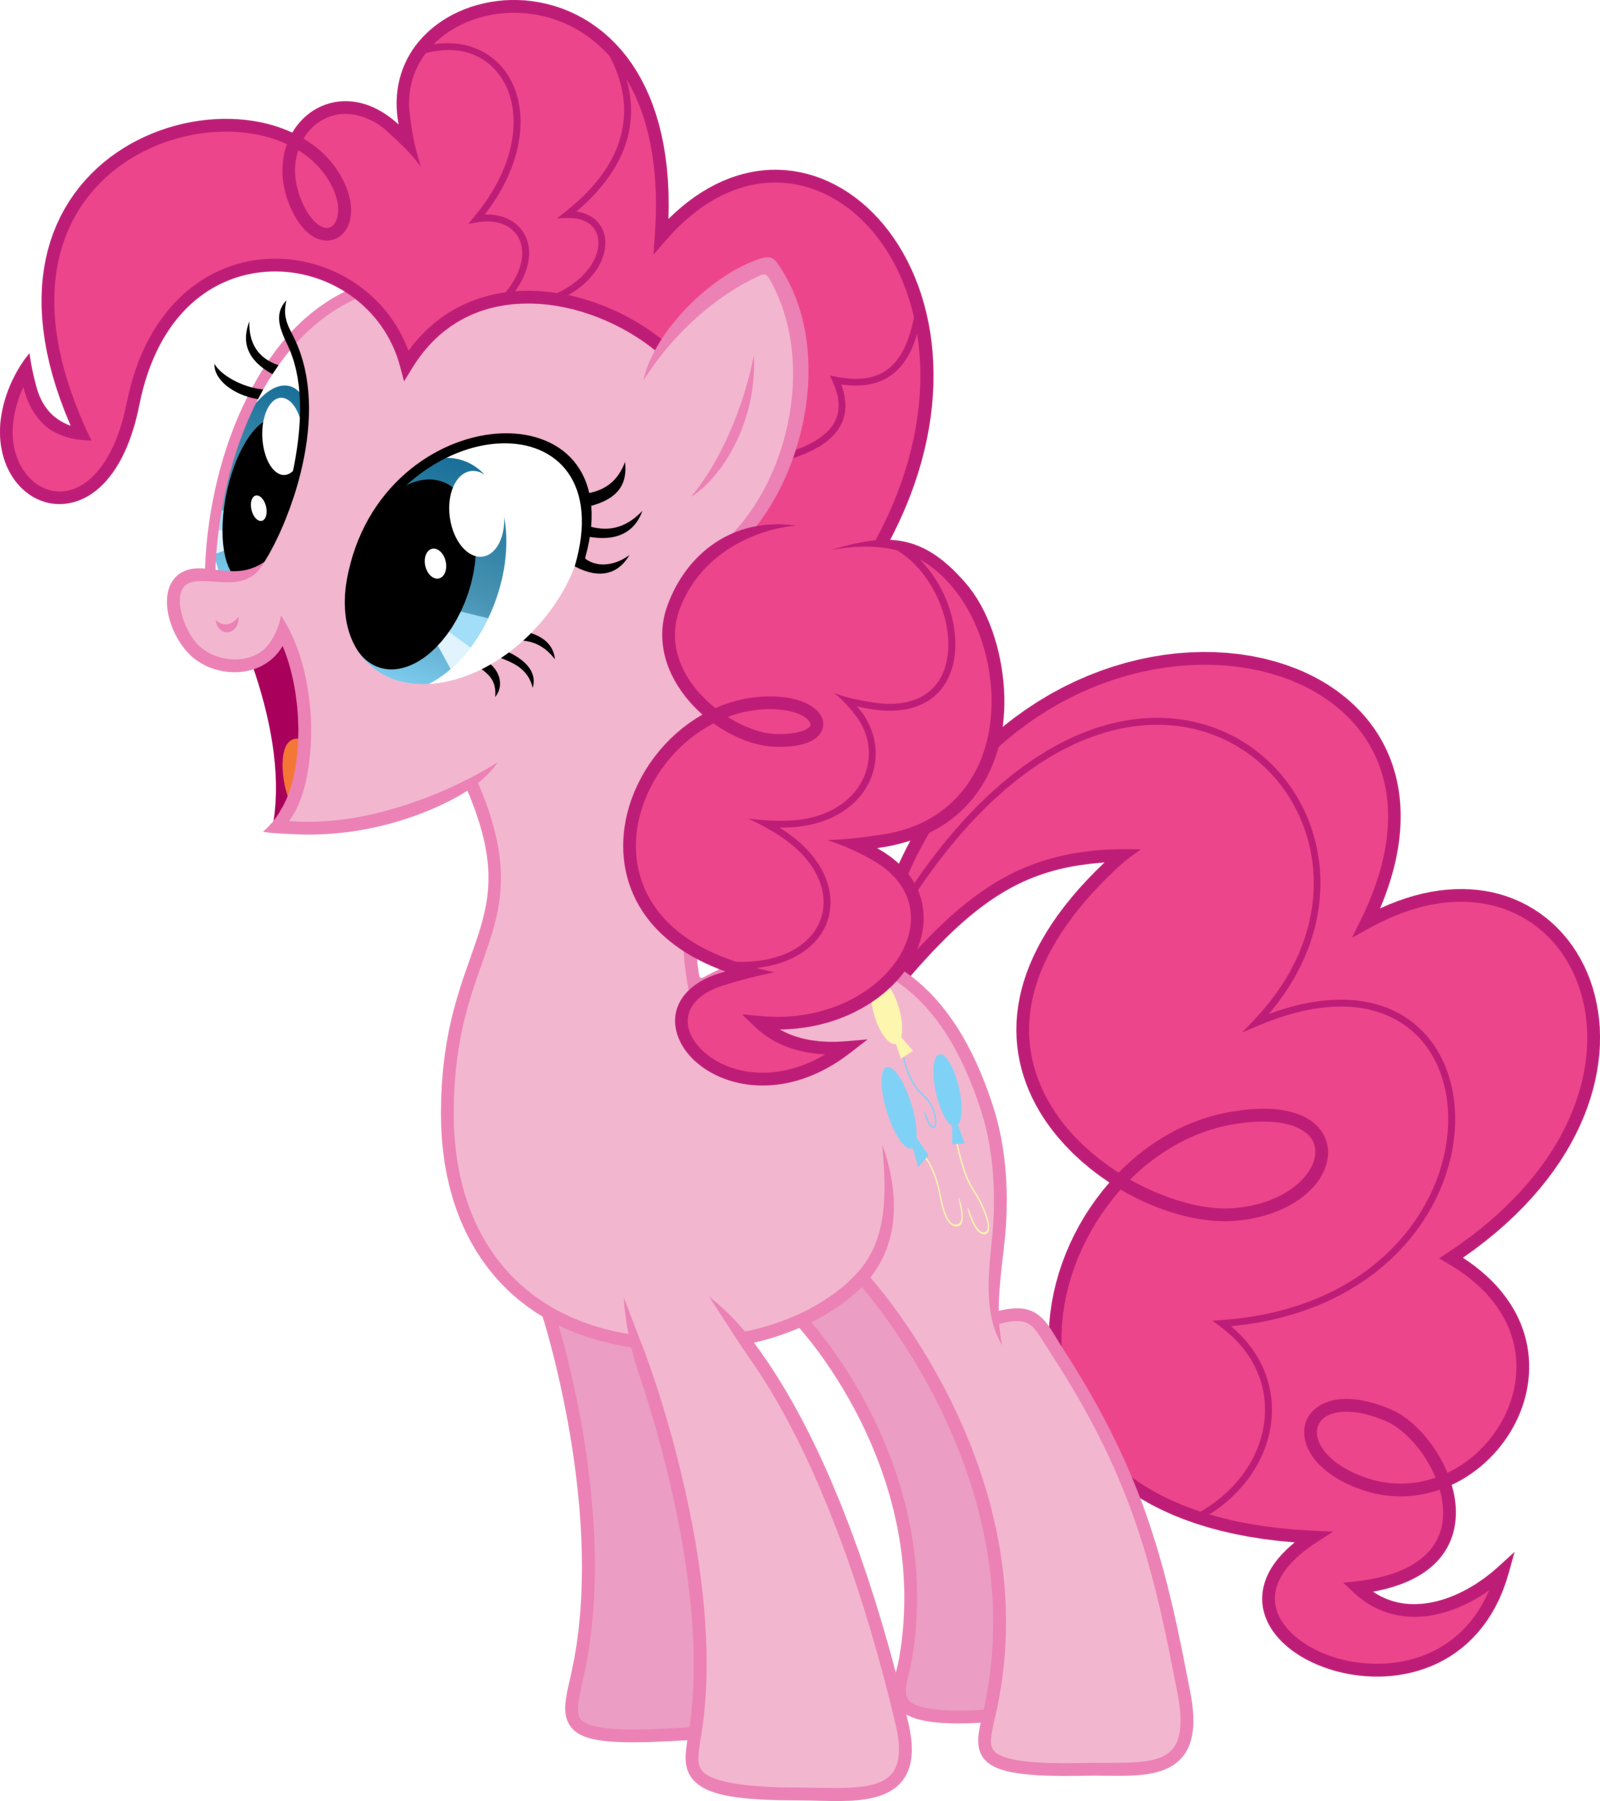 Pinkie Pie 3 By Xpesifeindx D5f4f2j Png 1600 1801 Pinkie Pie My Little Pony Pictures Mlp My Little Pony